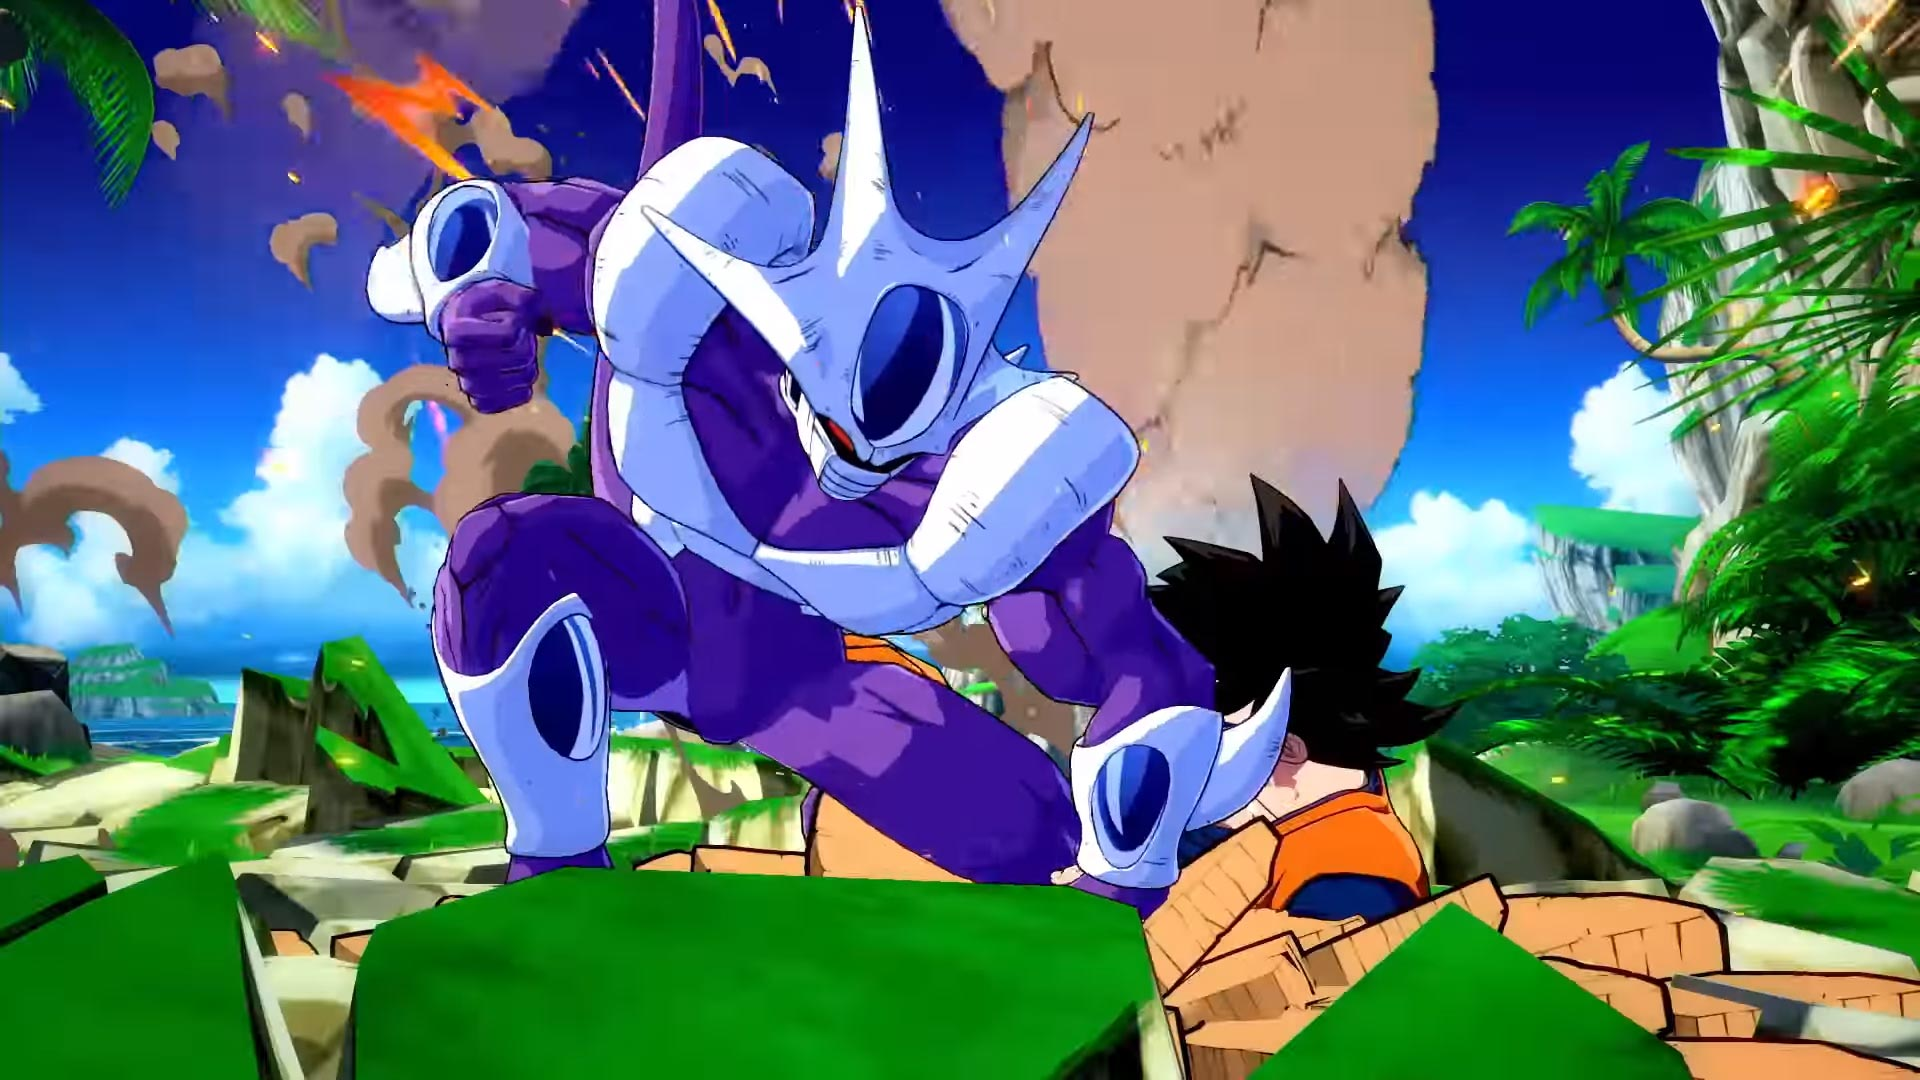 Cooler in Dragon Ball FighterZ 5 out of 9 image gallery